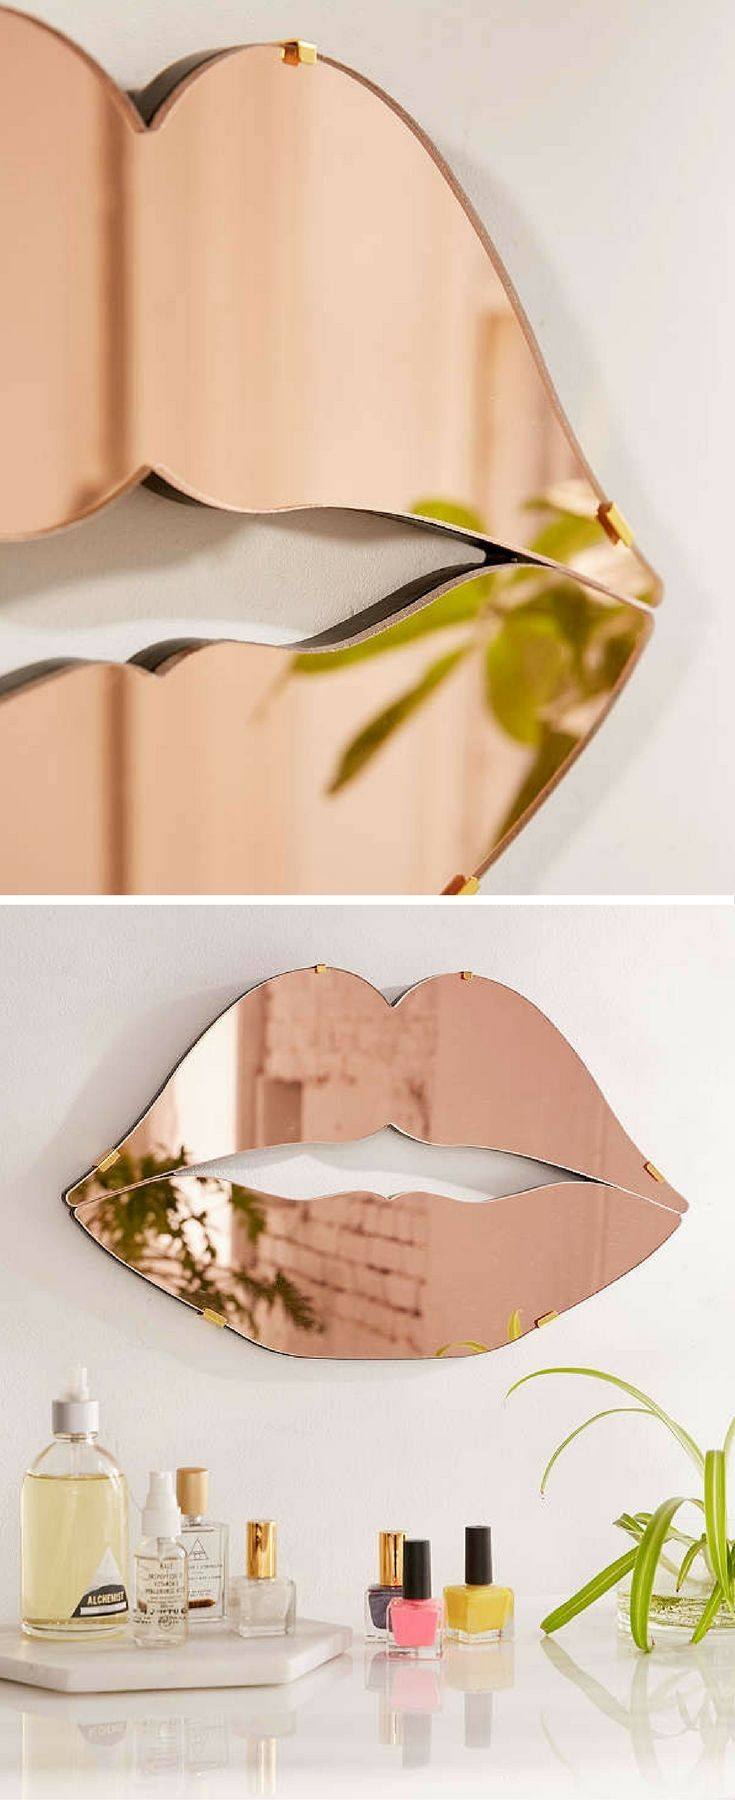 This mirror would look great over a vanity Urban